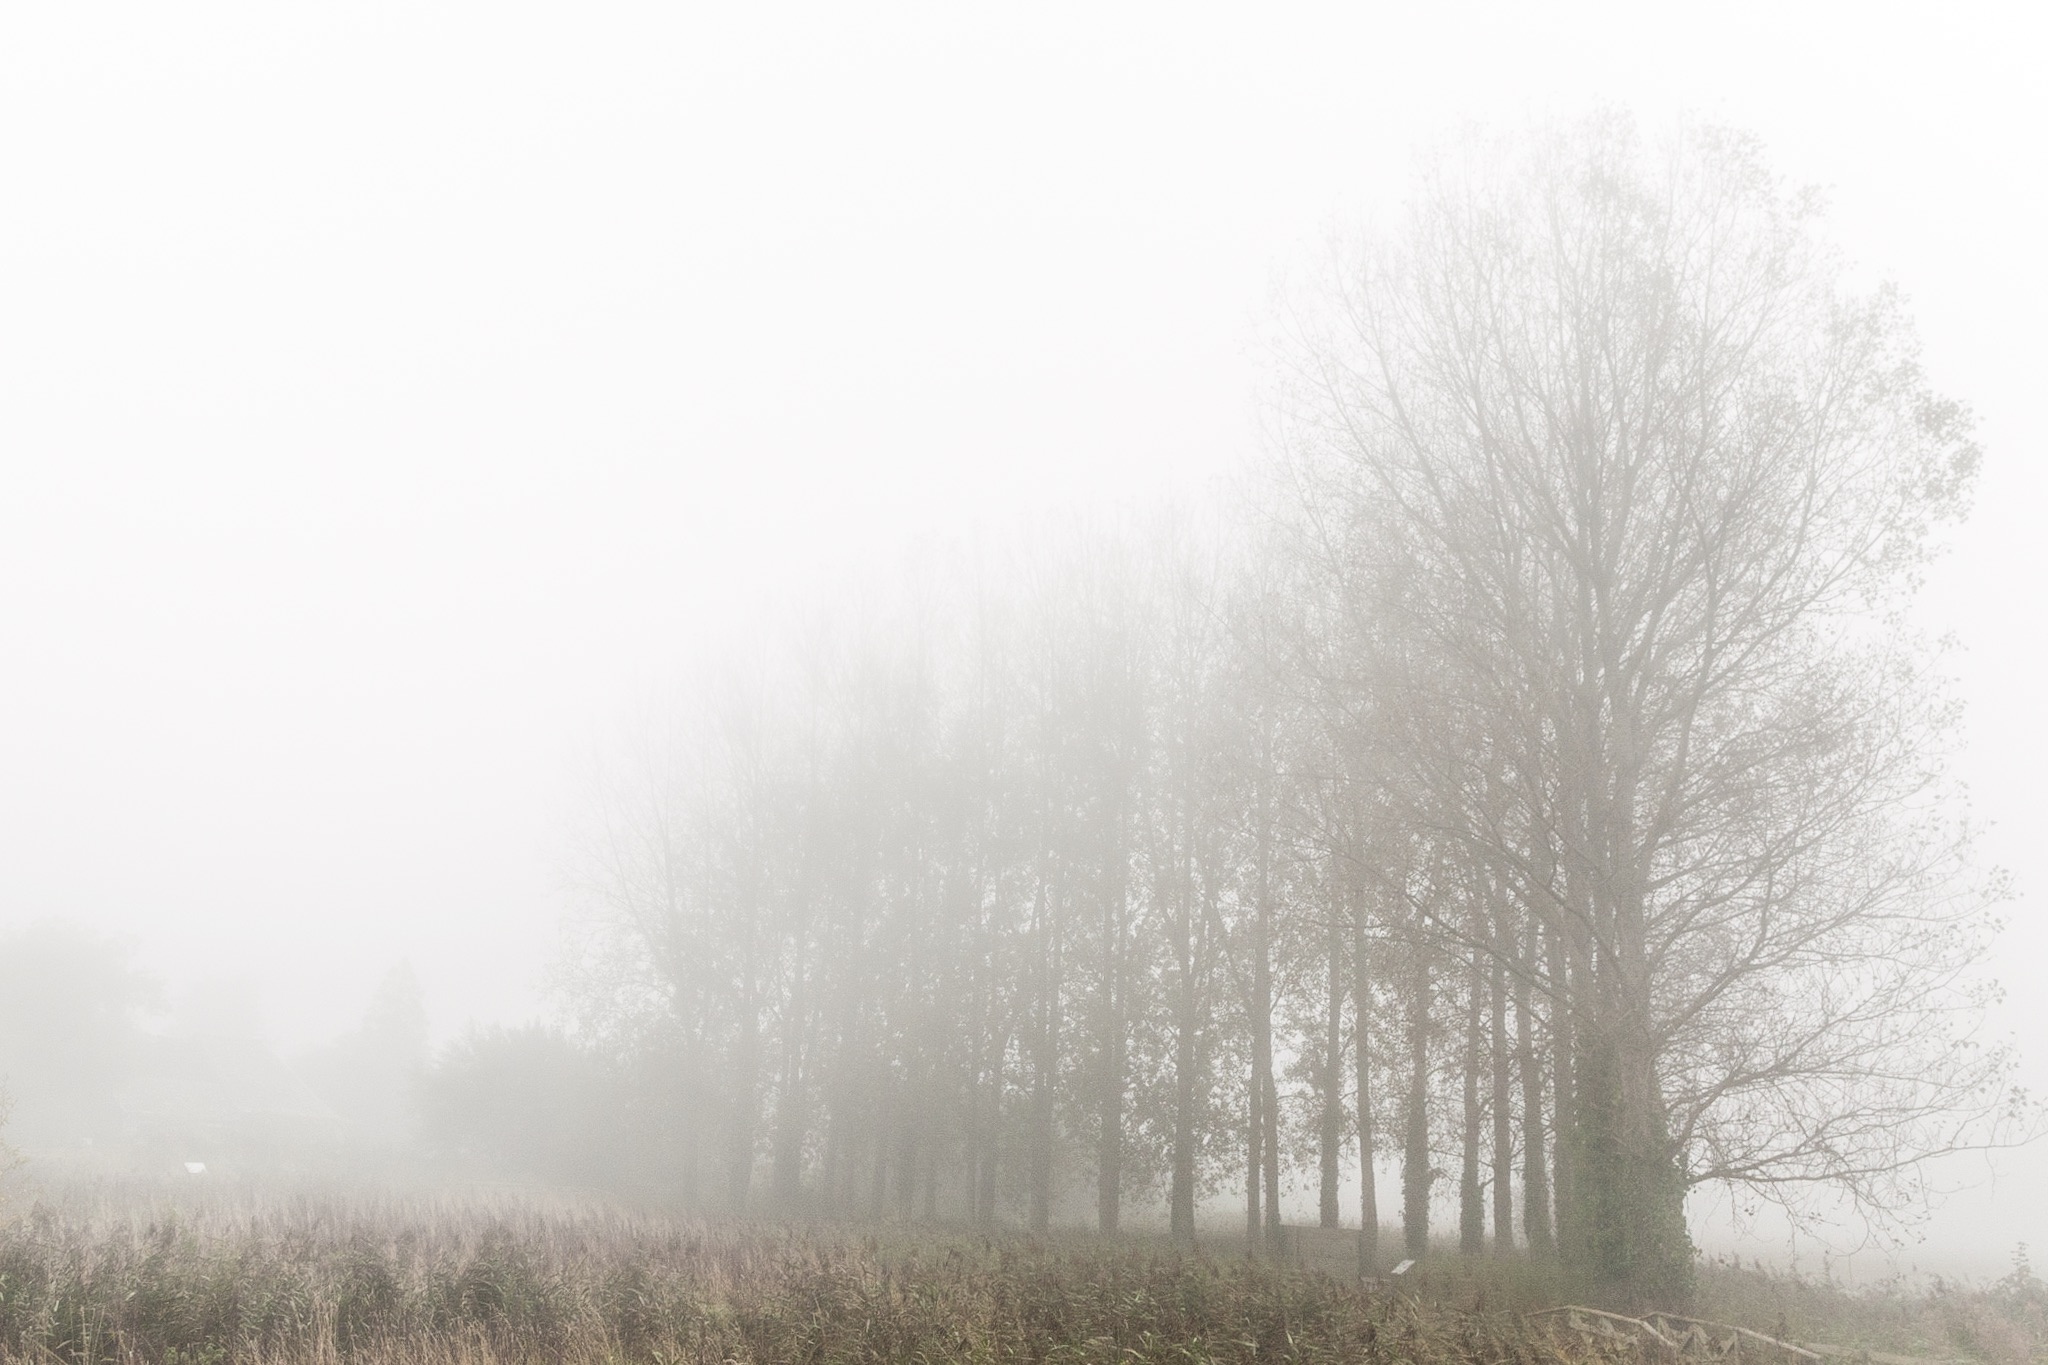 Trees in the mist - the original composition